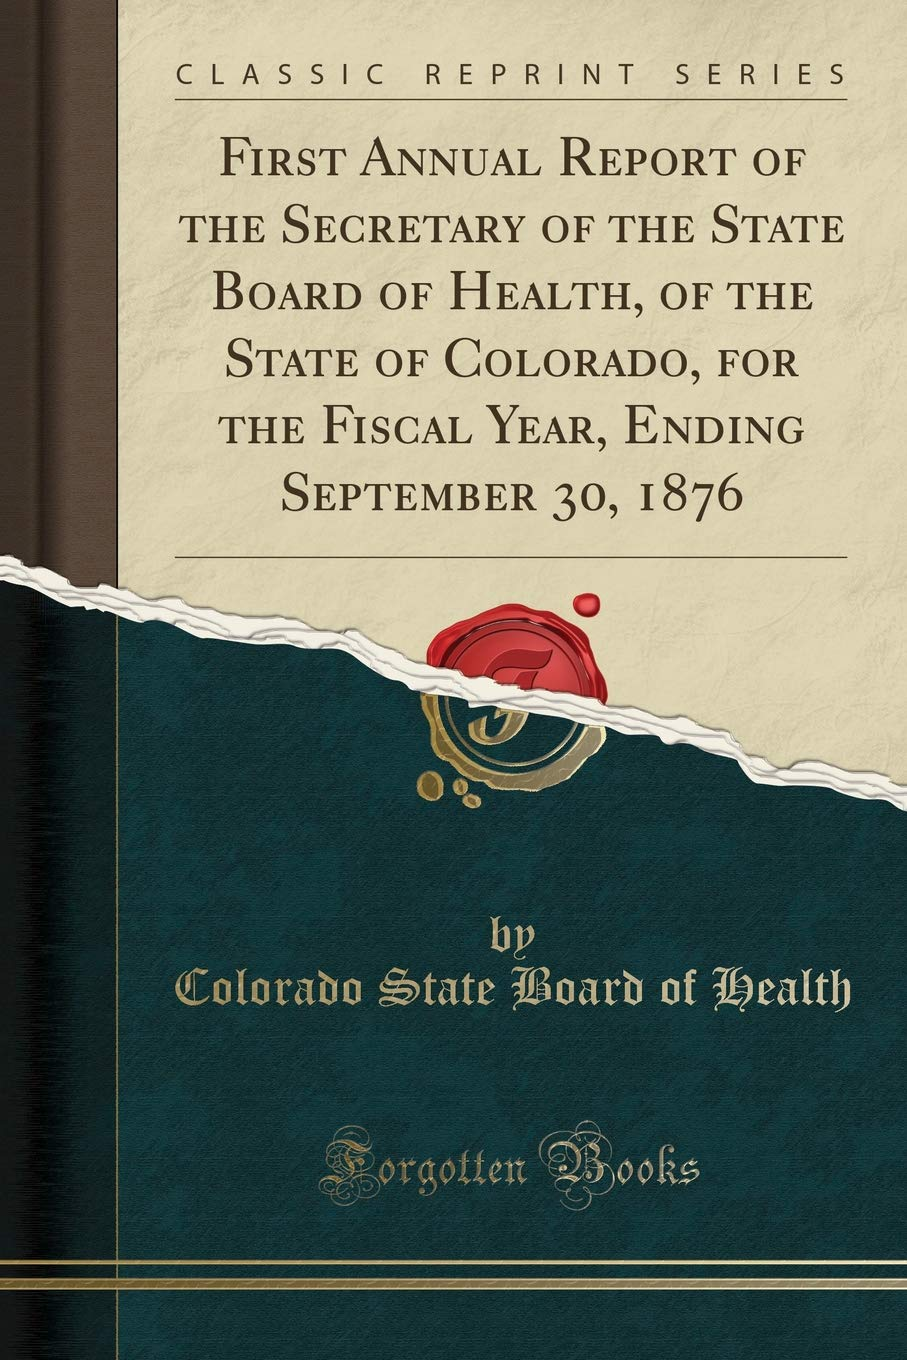 Download First Annual Report of the Secretary of the State Board of Health, of the State of Colorado, for the Fiscal Year, Ending September 30, 1876 (Classic Reprint) PDF